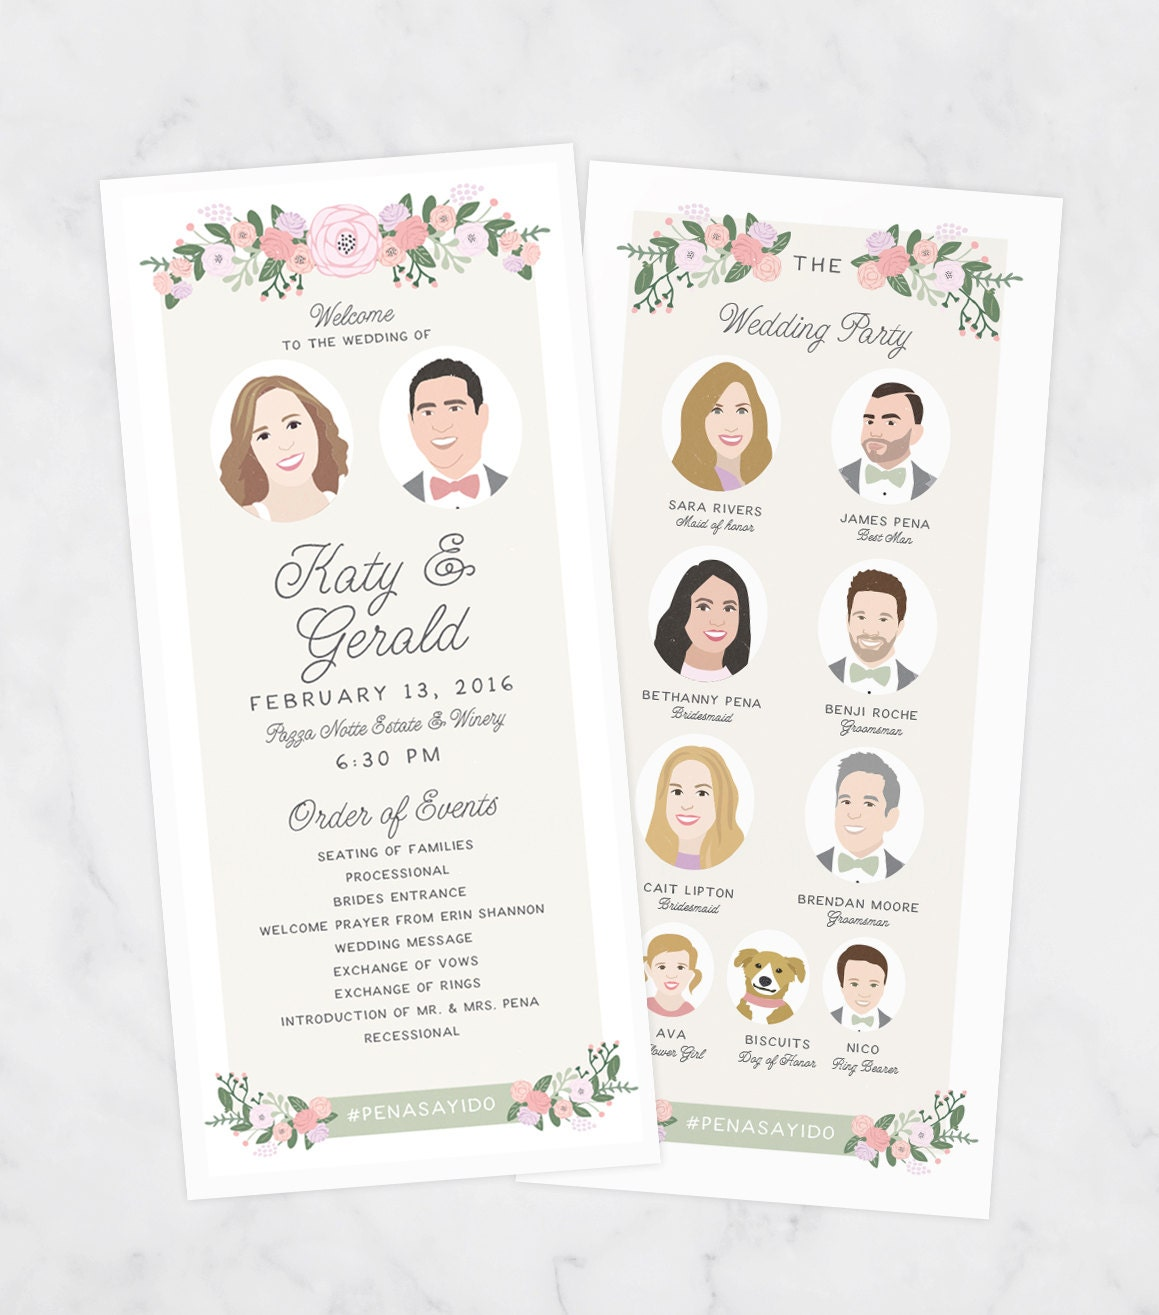 Wedding Party Programs Illustrated Wedding By MissDesignBerryInc